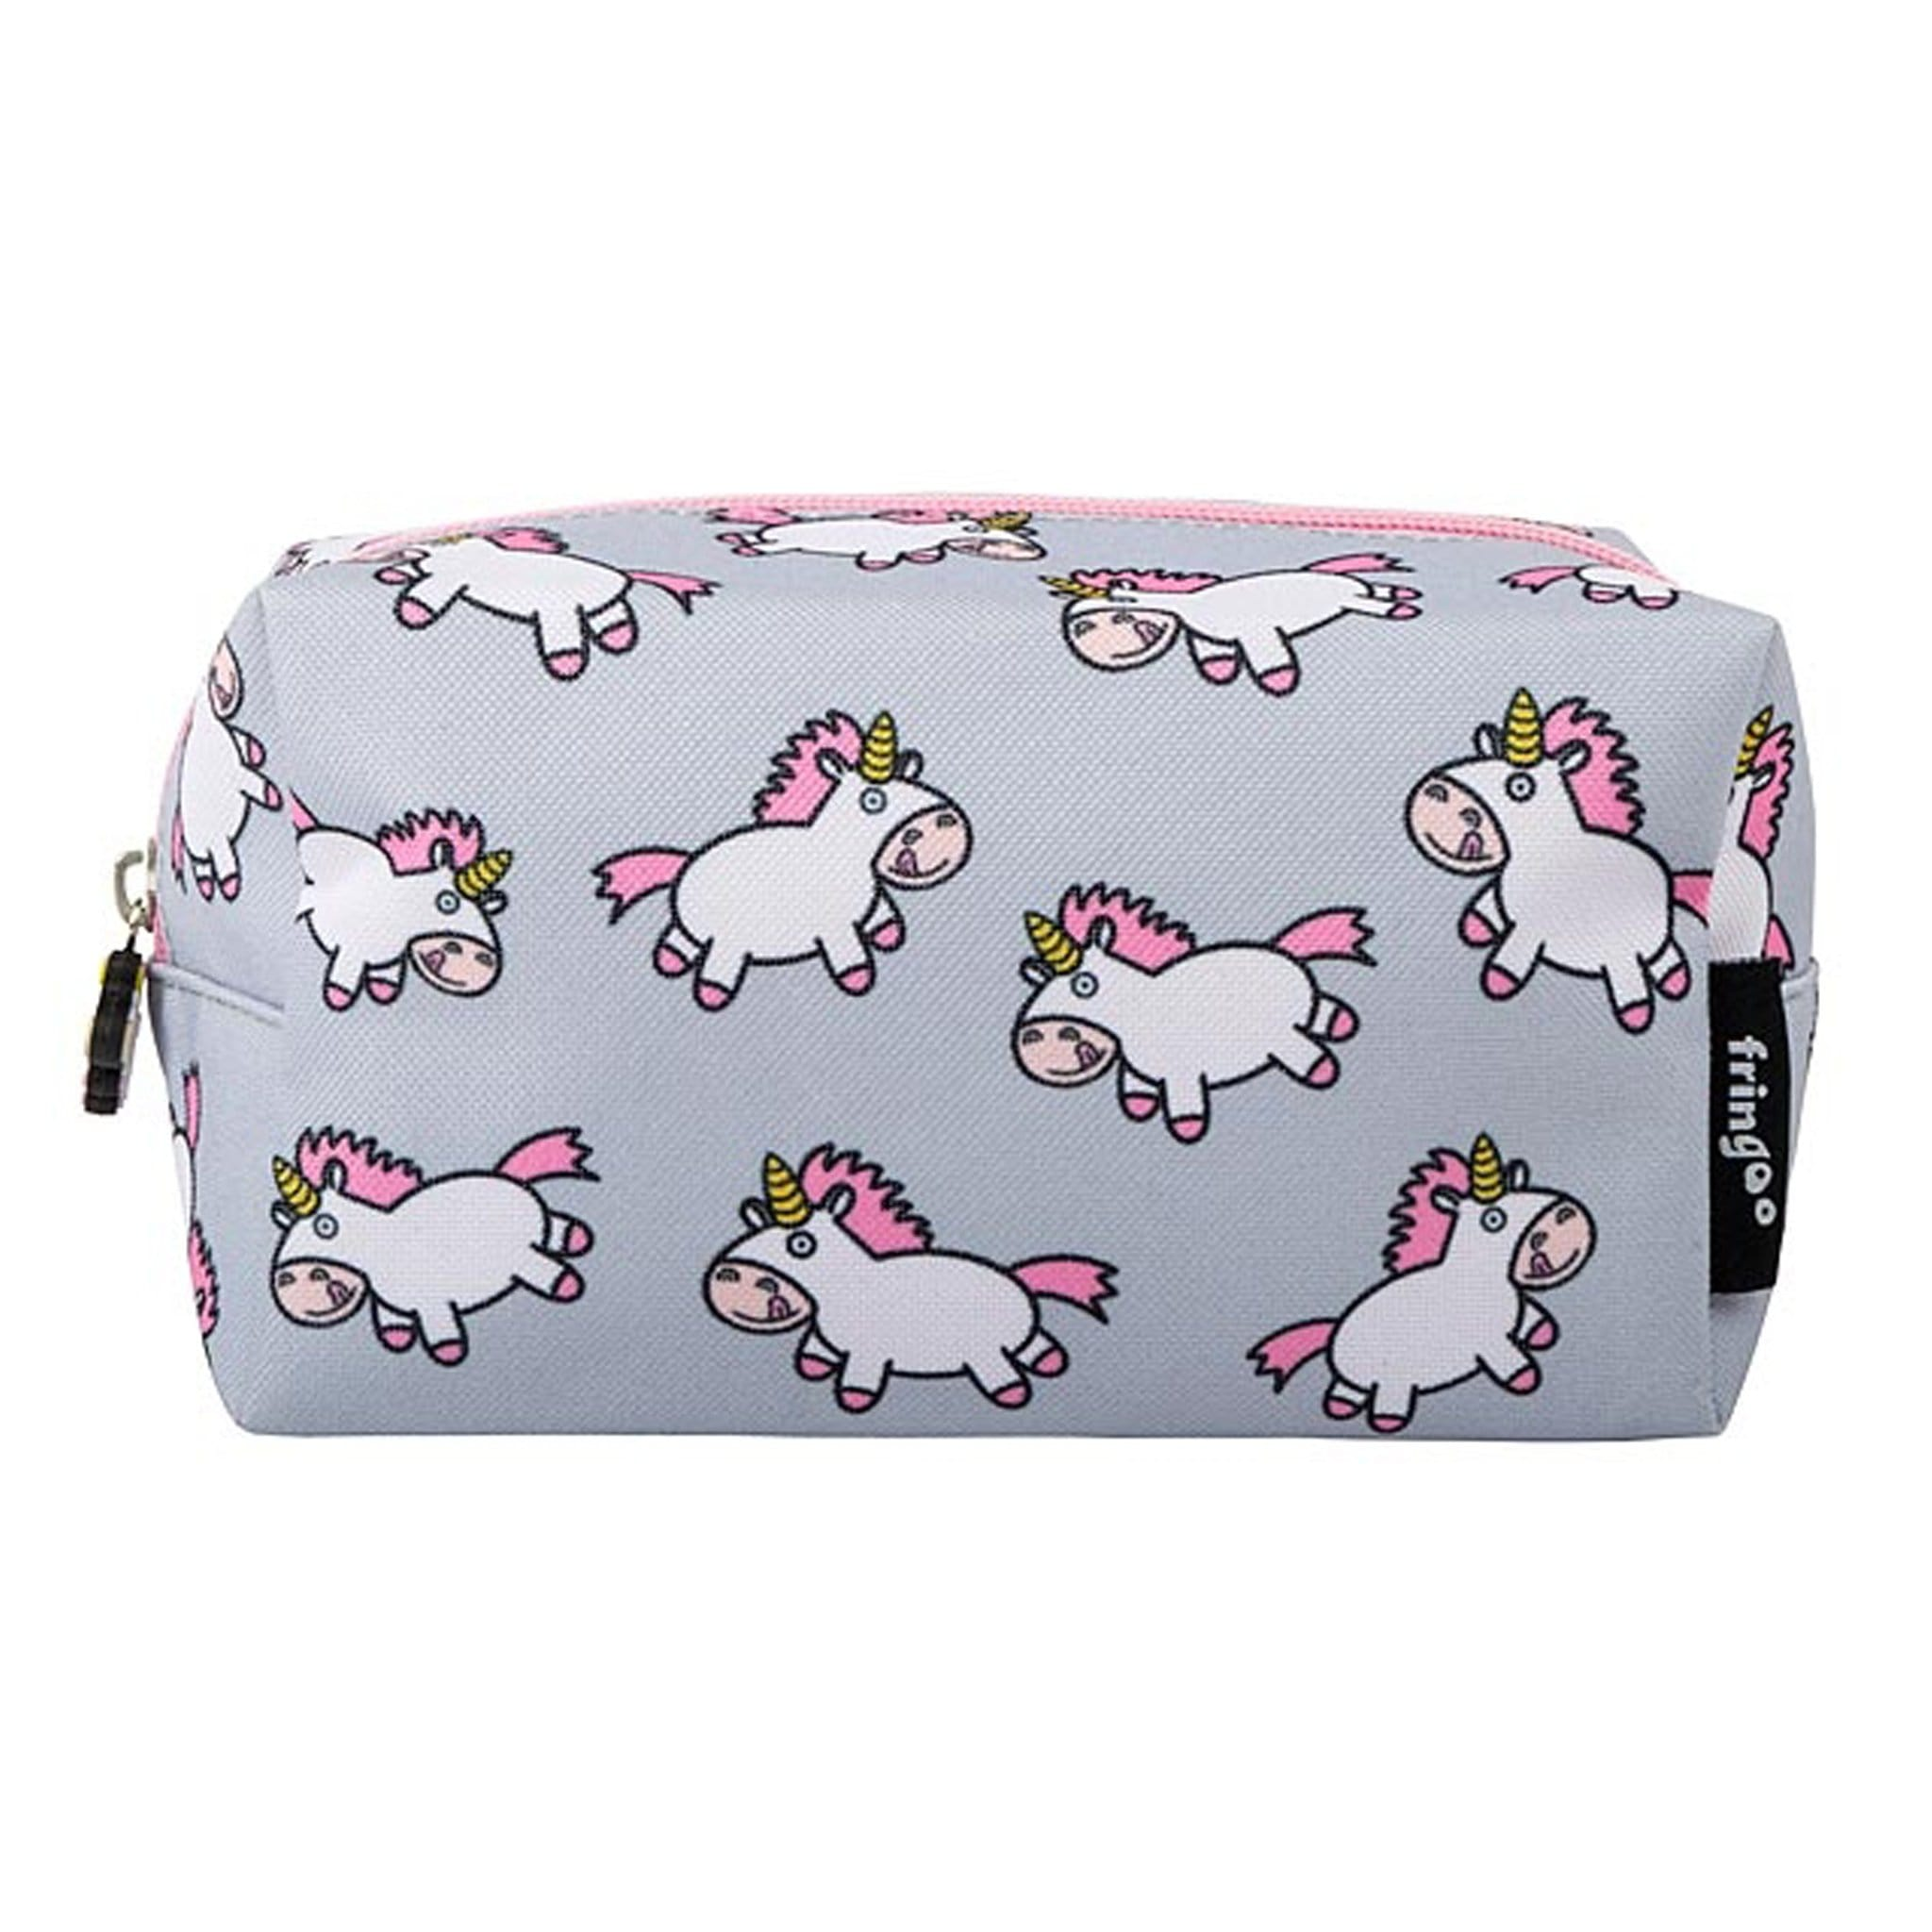 Fringoo Unicorn Make Up Bag In Grey With White Cartoon Unicorns Side View